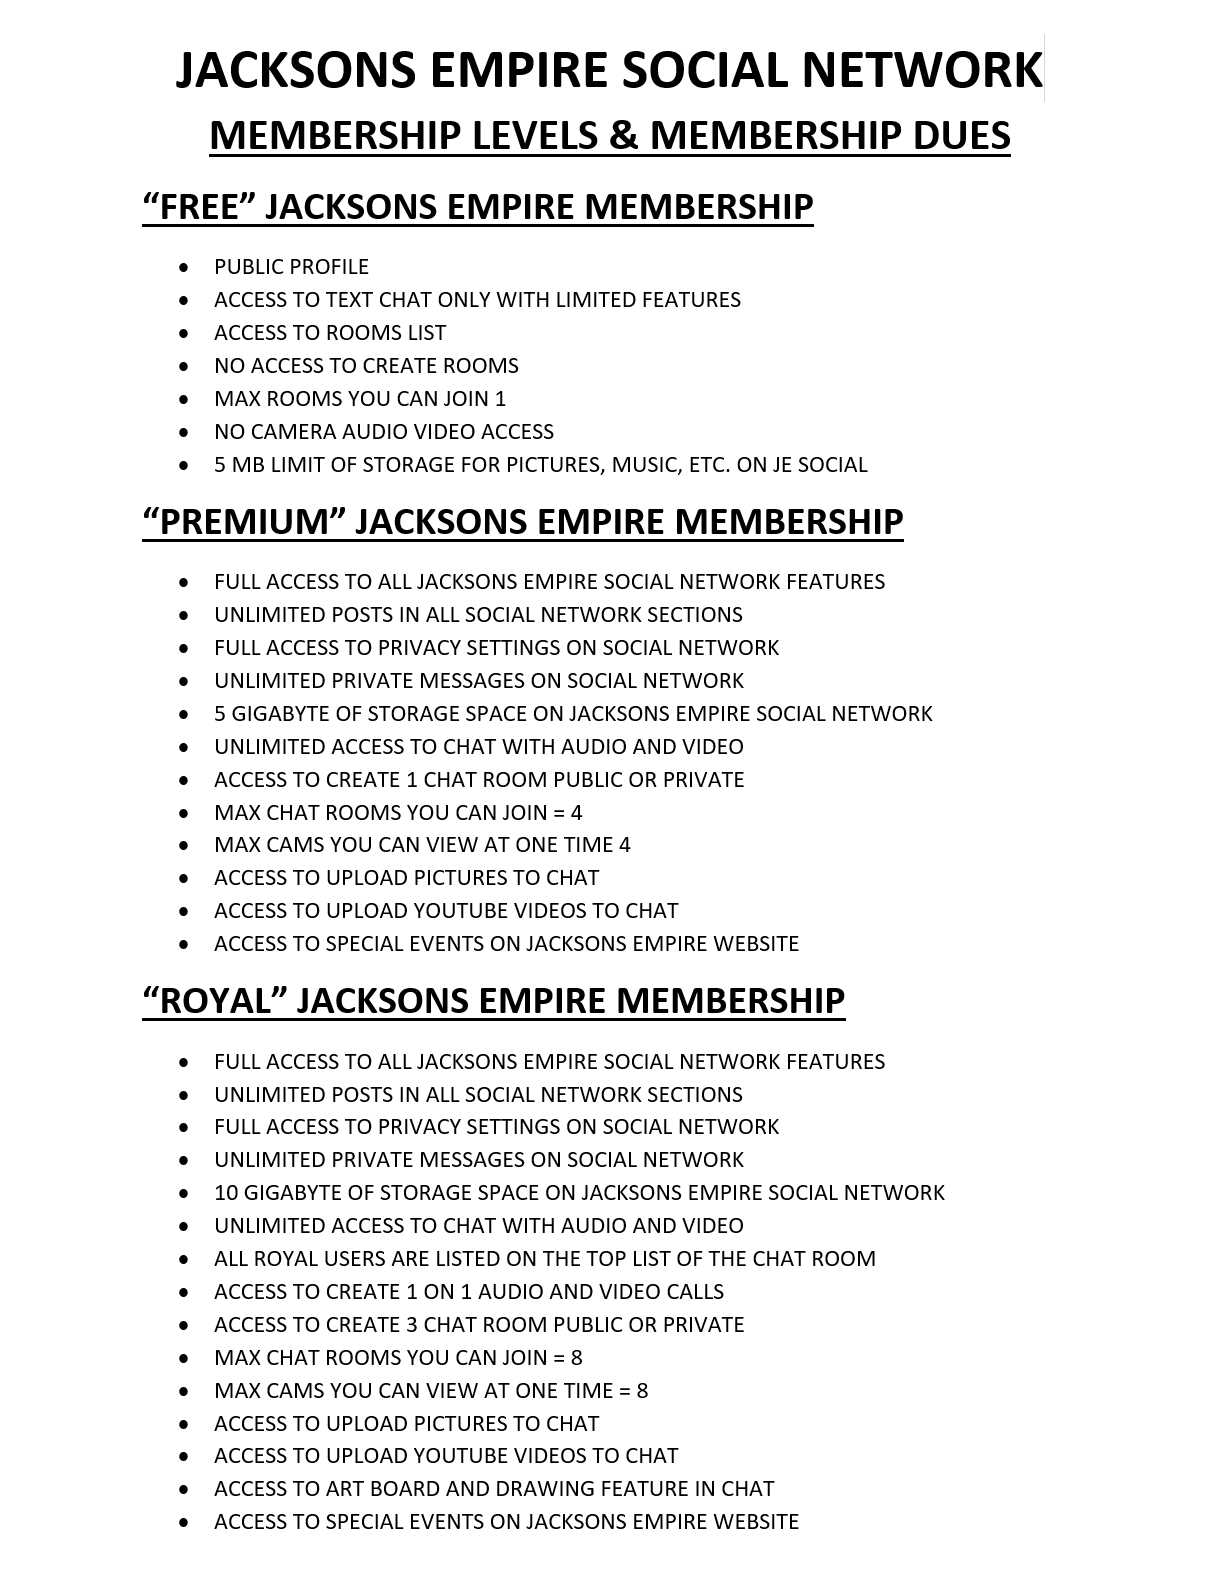 Membership Levels Page 1